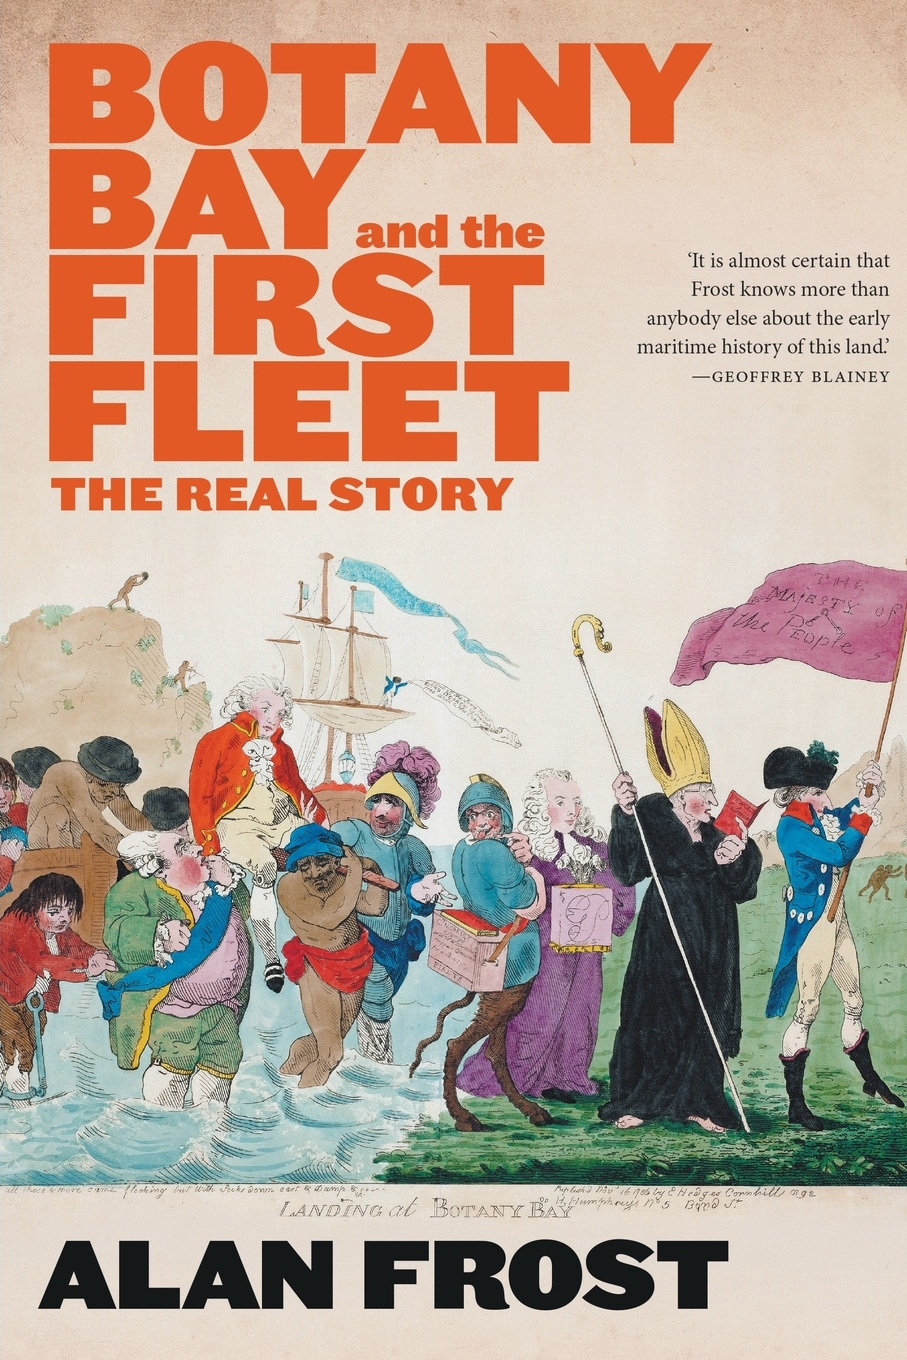 Alan Frost Botany Bay and the First Fleet